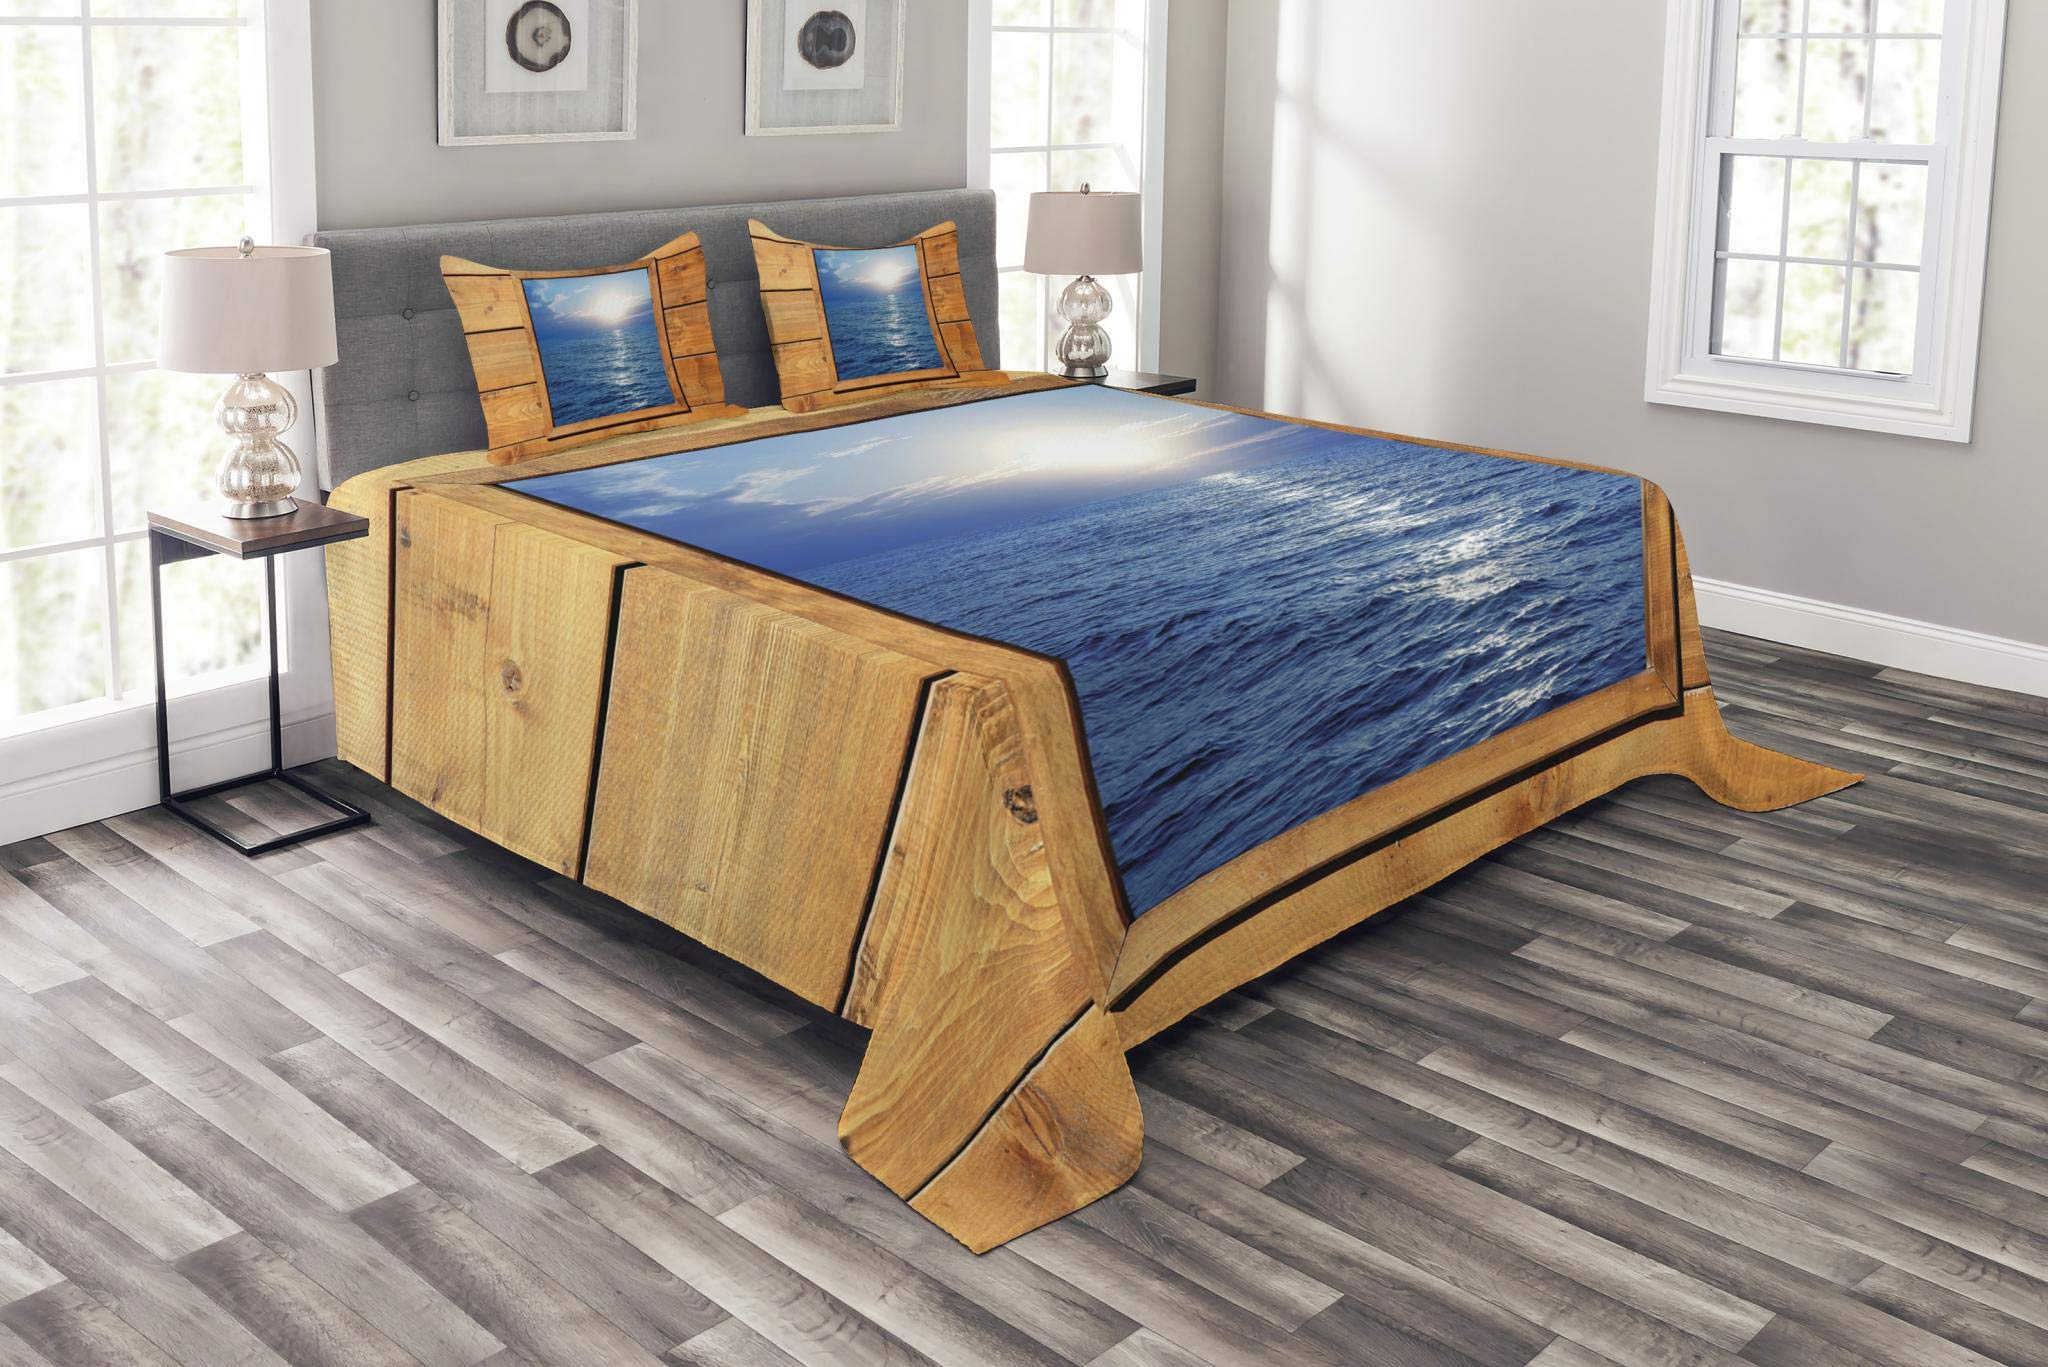 Lunarable Rustic Bedspread Set King Size, Window Sea View from Wooden Oak Square Frame Room Sunrise Sun Rays Rustic, Decorative Quilted 3 Piece Coverlet Set with 2 Pillow Shams, Blue Pale Caramel